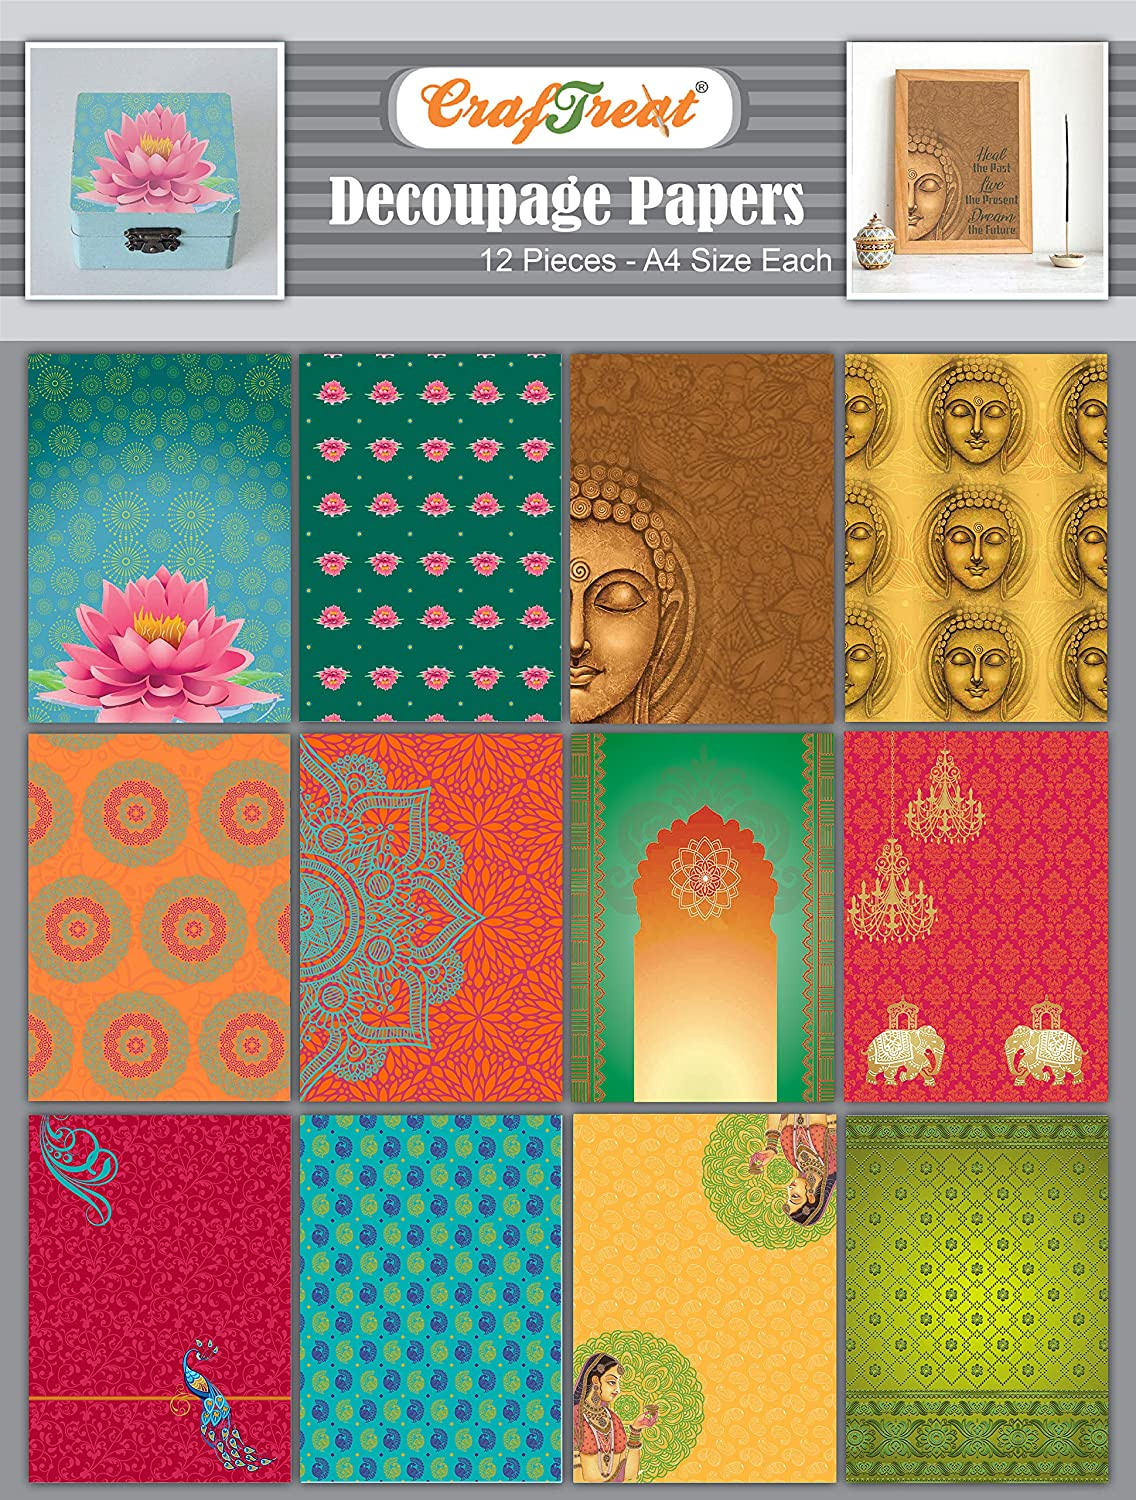 CrafTreat India Decoupage Paper for Crafts - Ethnic India - Size: A4-8 Pcs - Furniture Decoupage Paper Buddha - Decoupage Paper Indian